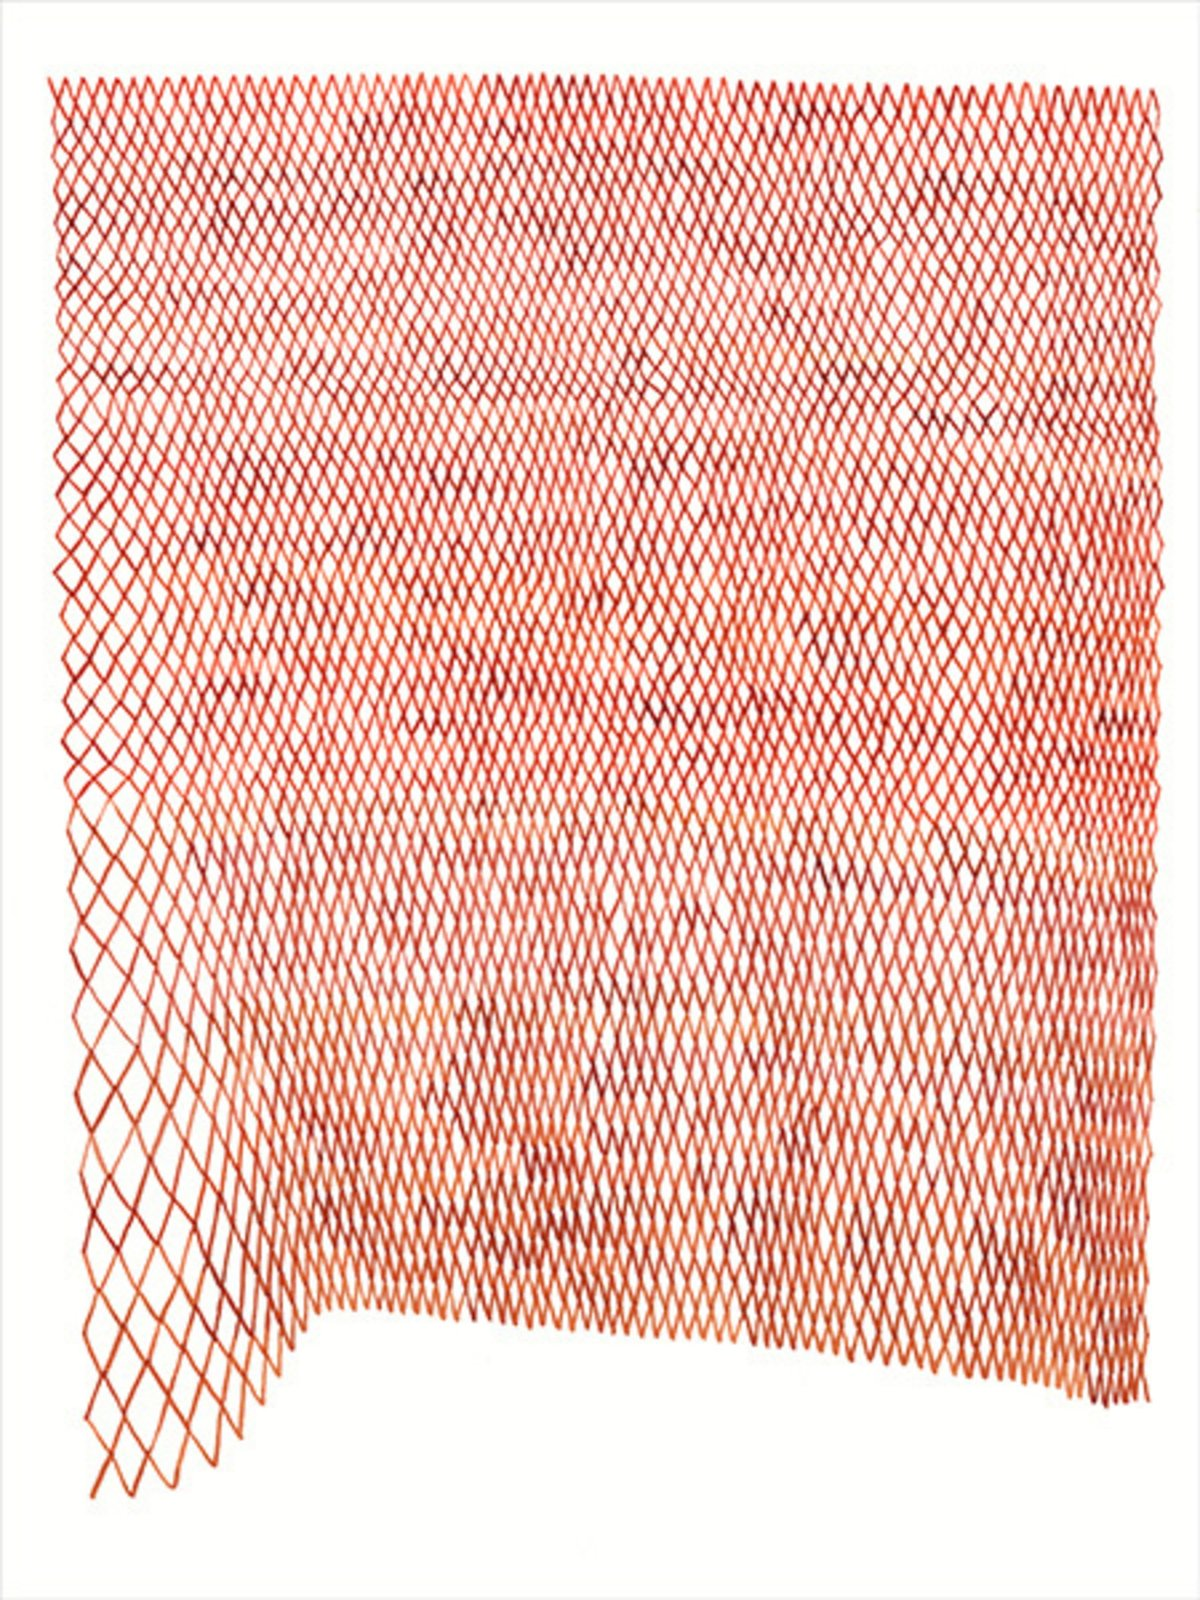 Robert Lansden, Untitled 2011-21, 2011